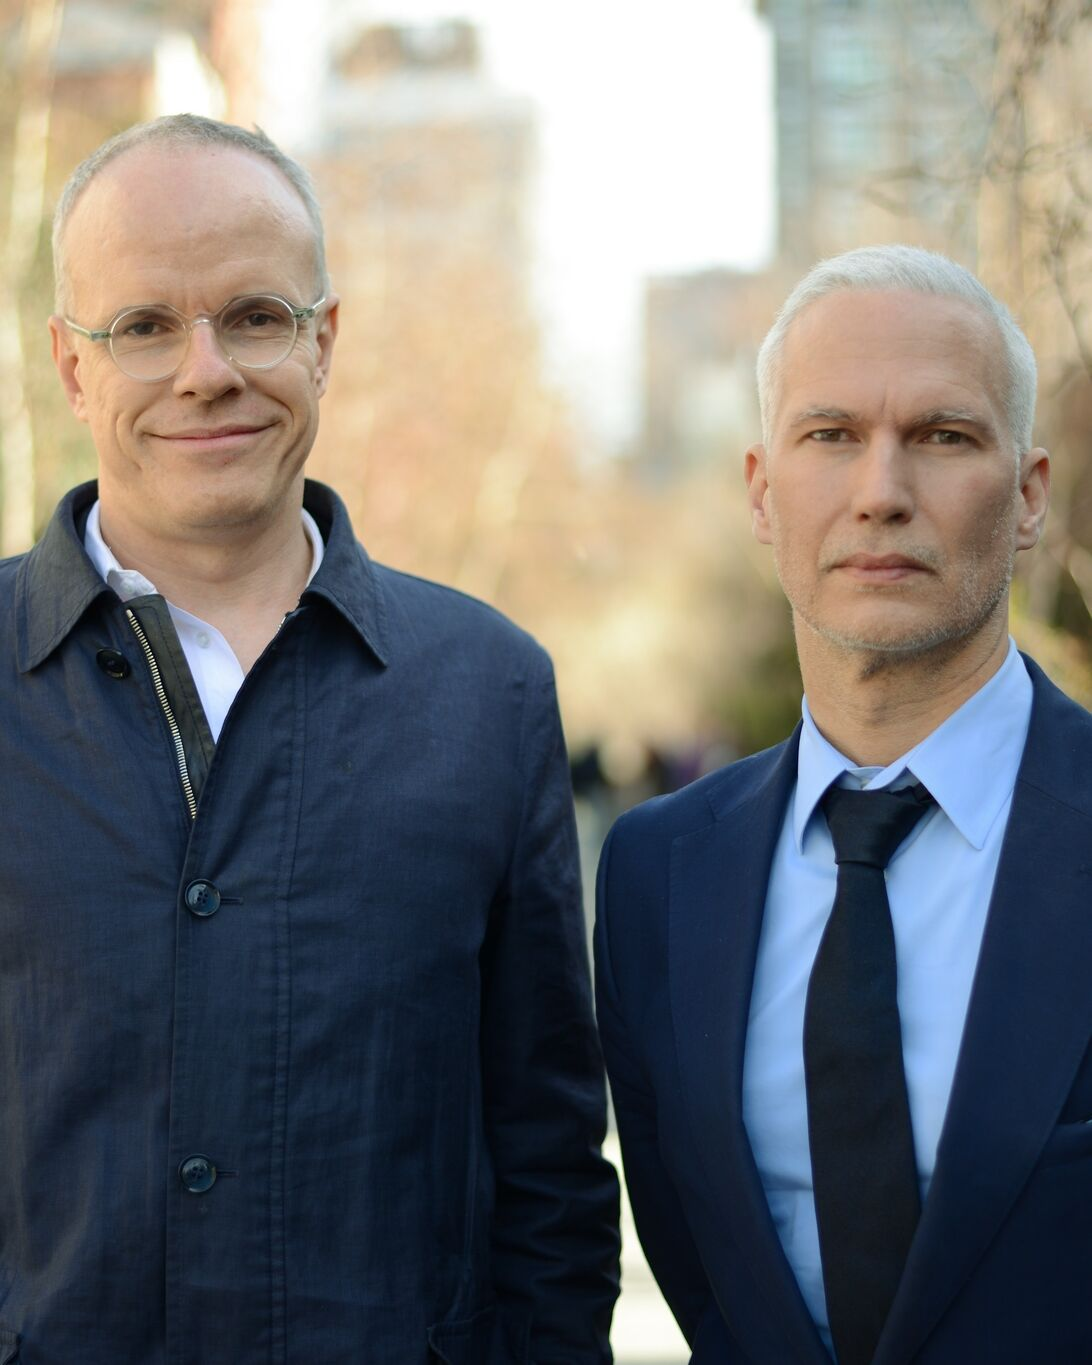 Hans Ulrich Obrist & Klaus Biesenbach on Co-Curating, Living Sculptures, and the Chance Encounter That Started It All